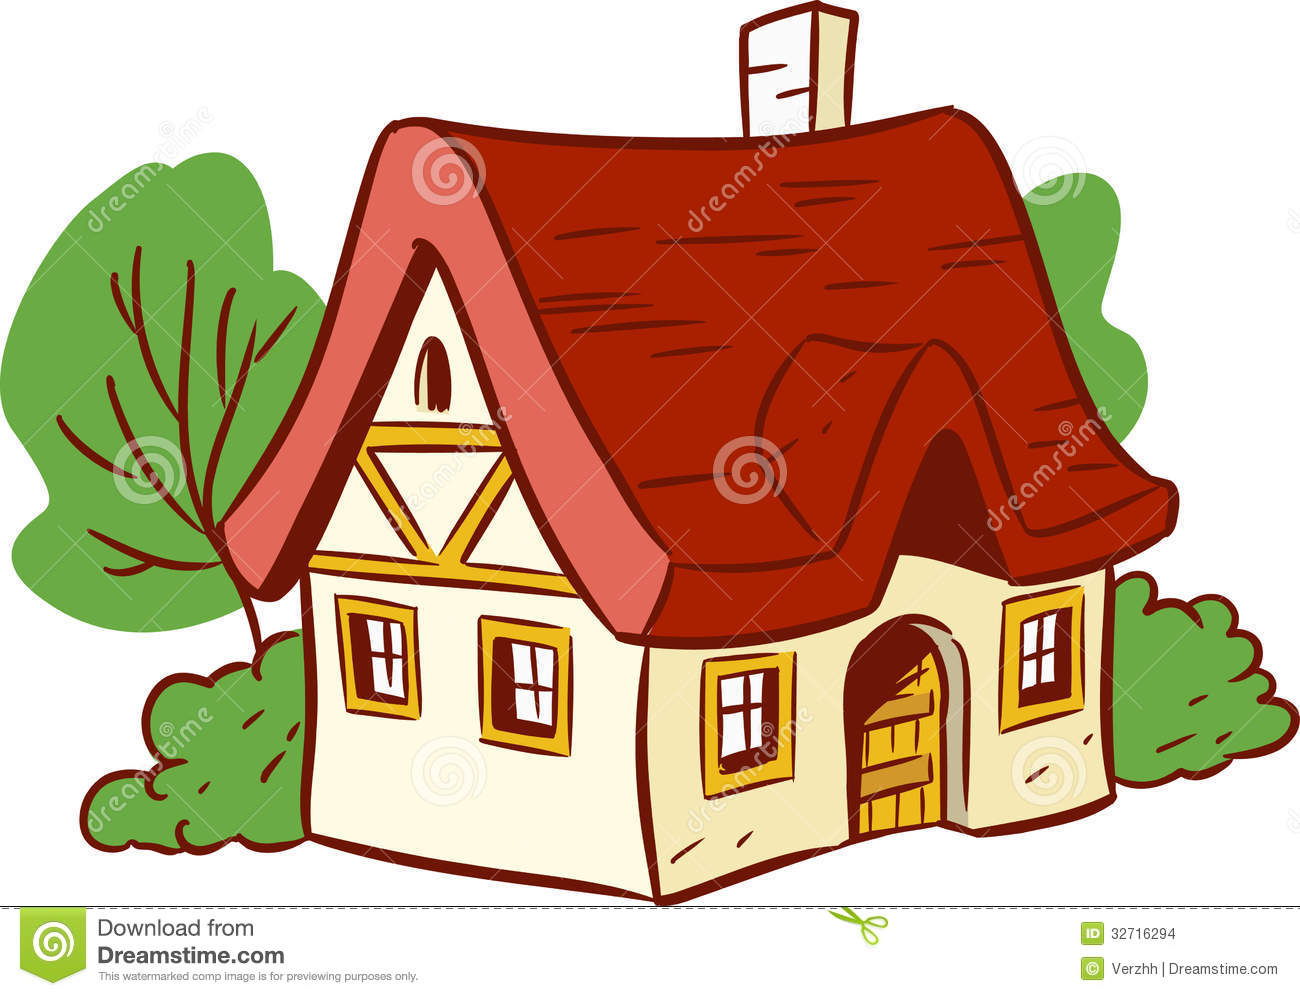 cartoon pictures of houses  Small cartoon house stock vector. Illustration of roof - 32716294